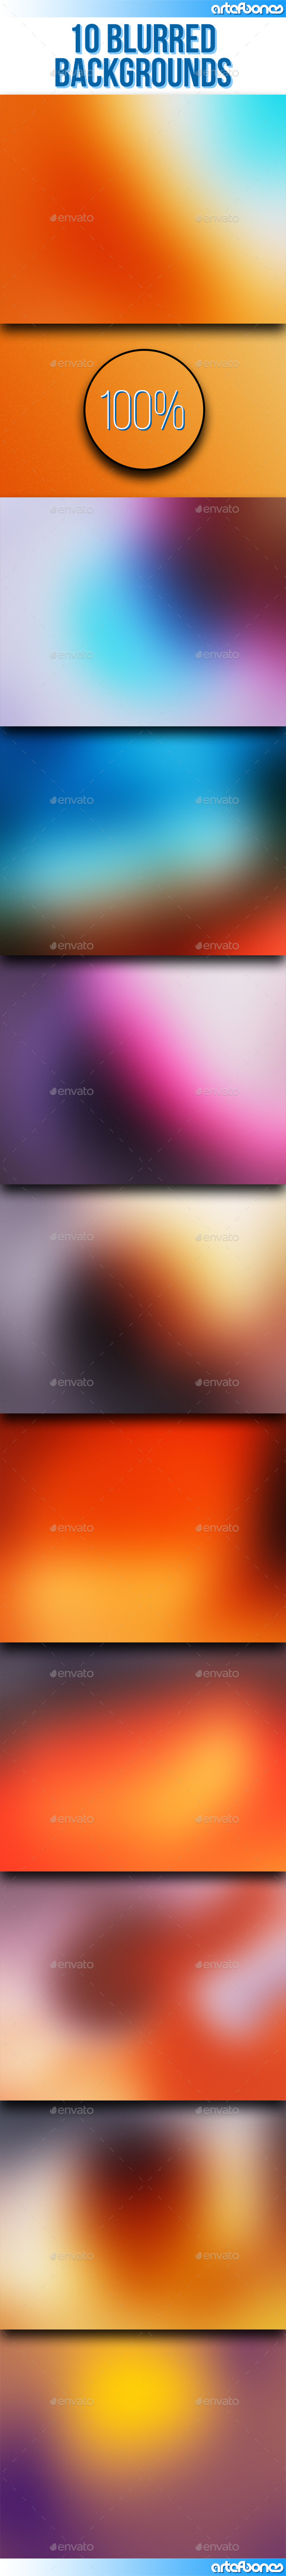 GraphicRiver 10 Blurred Backgrounds Vol.2 9681016